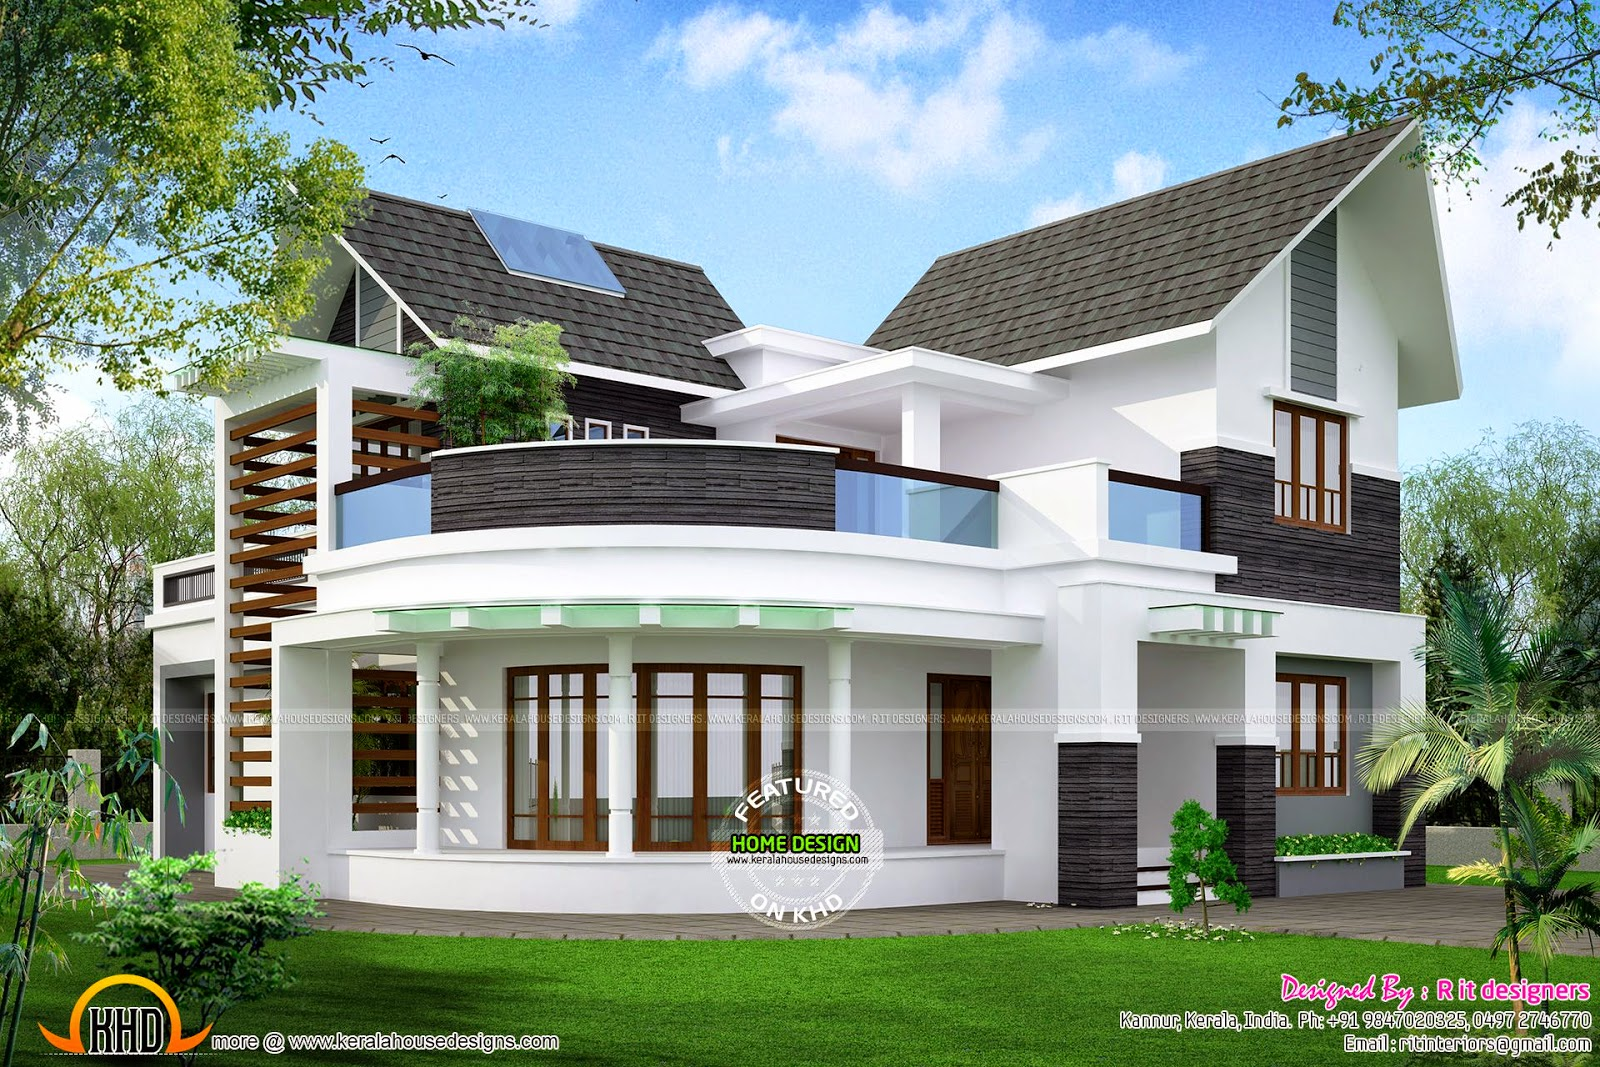 Modern unique 3 bedroom house design ground floor2 for Unique 3 bedroom house plans